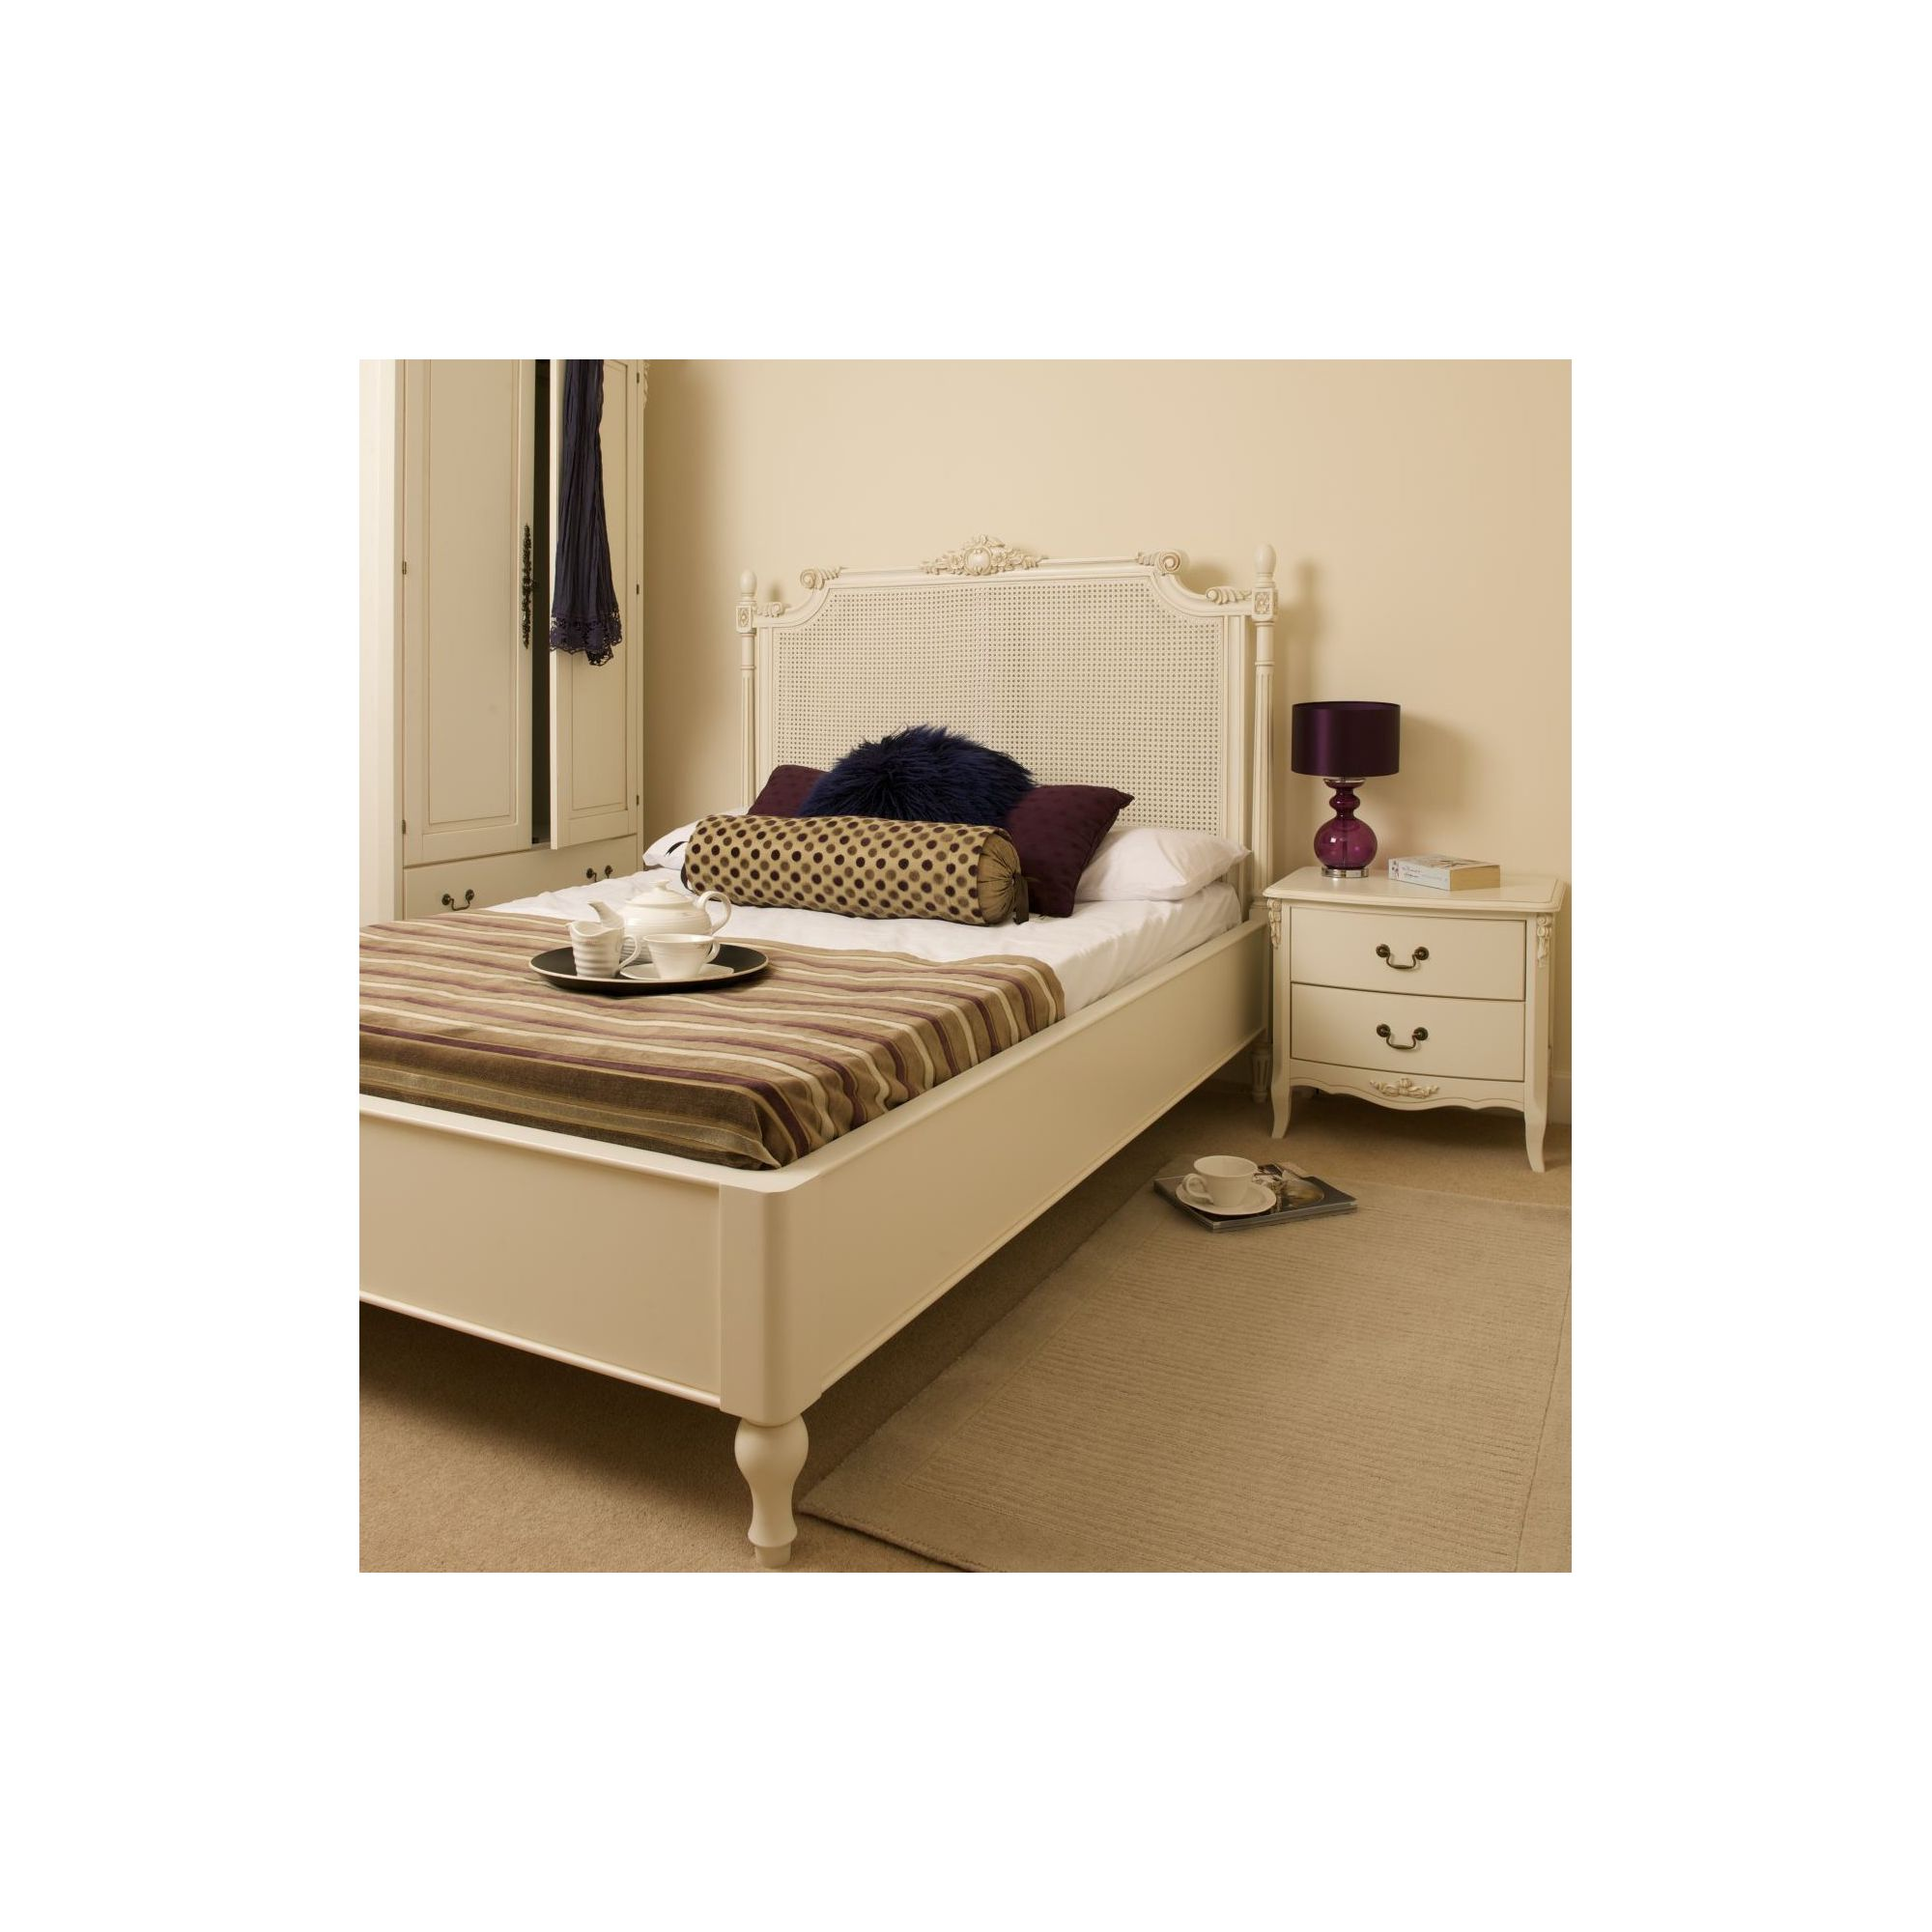 Kelburn Furniture Laurent Rattan Bed - Single at Tesco Direct